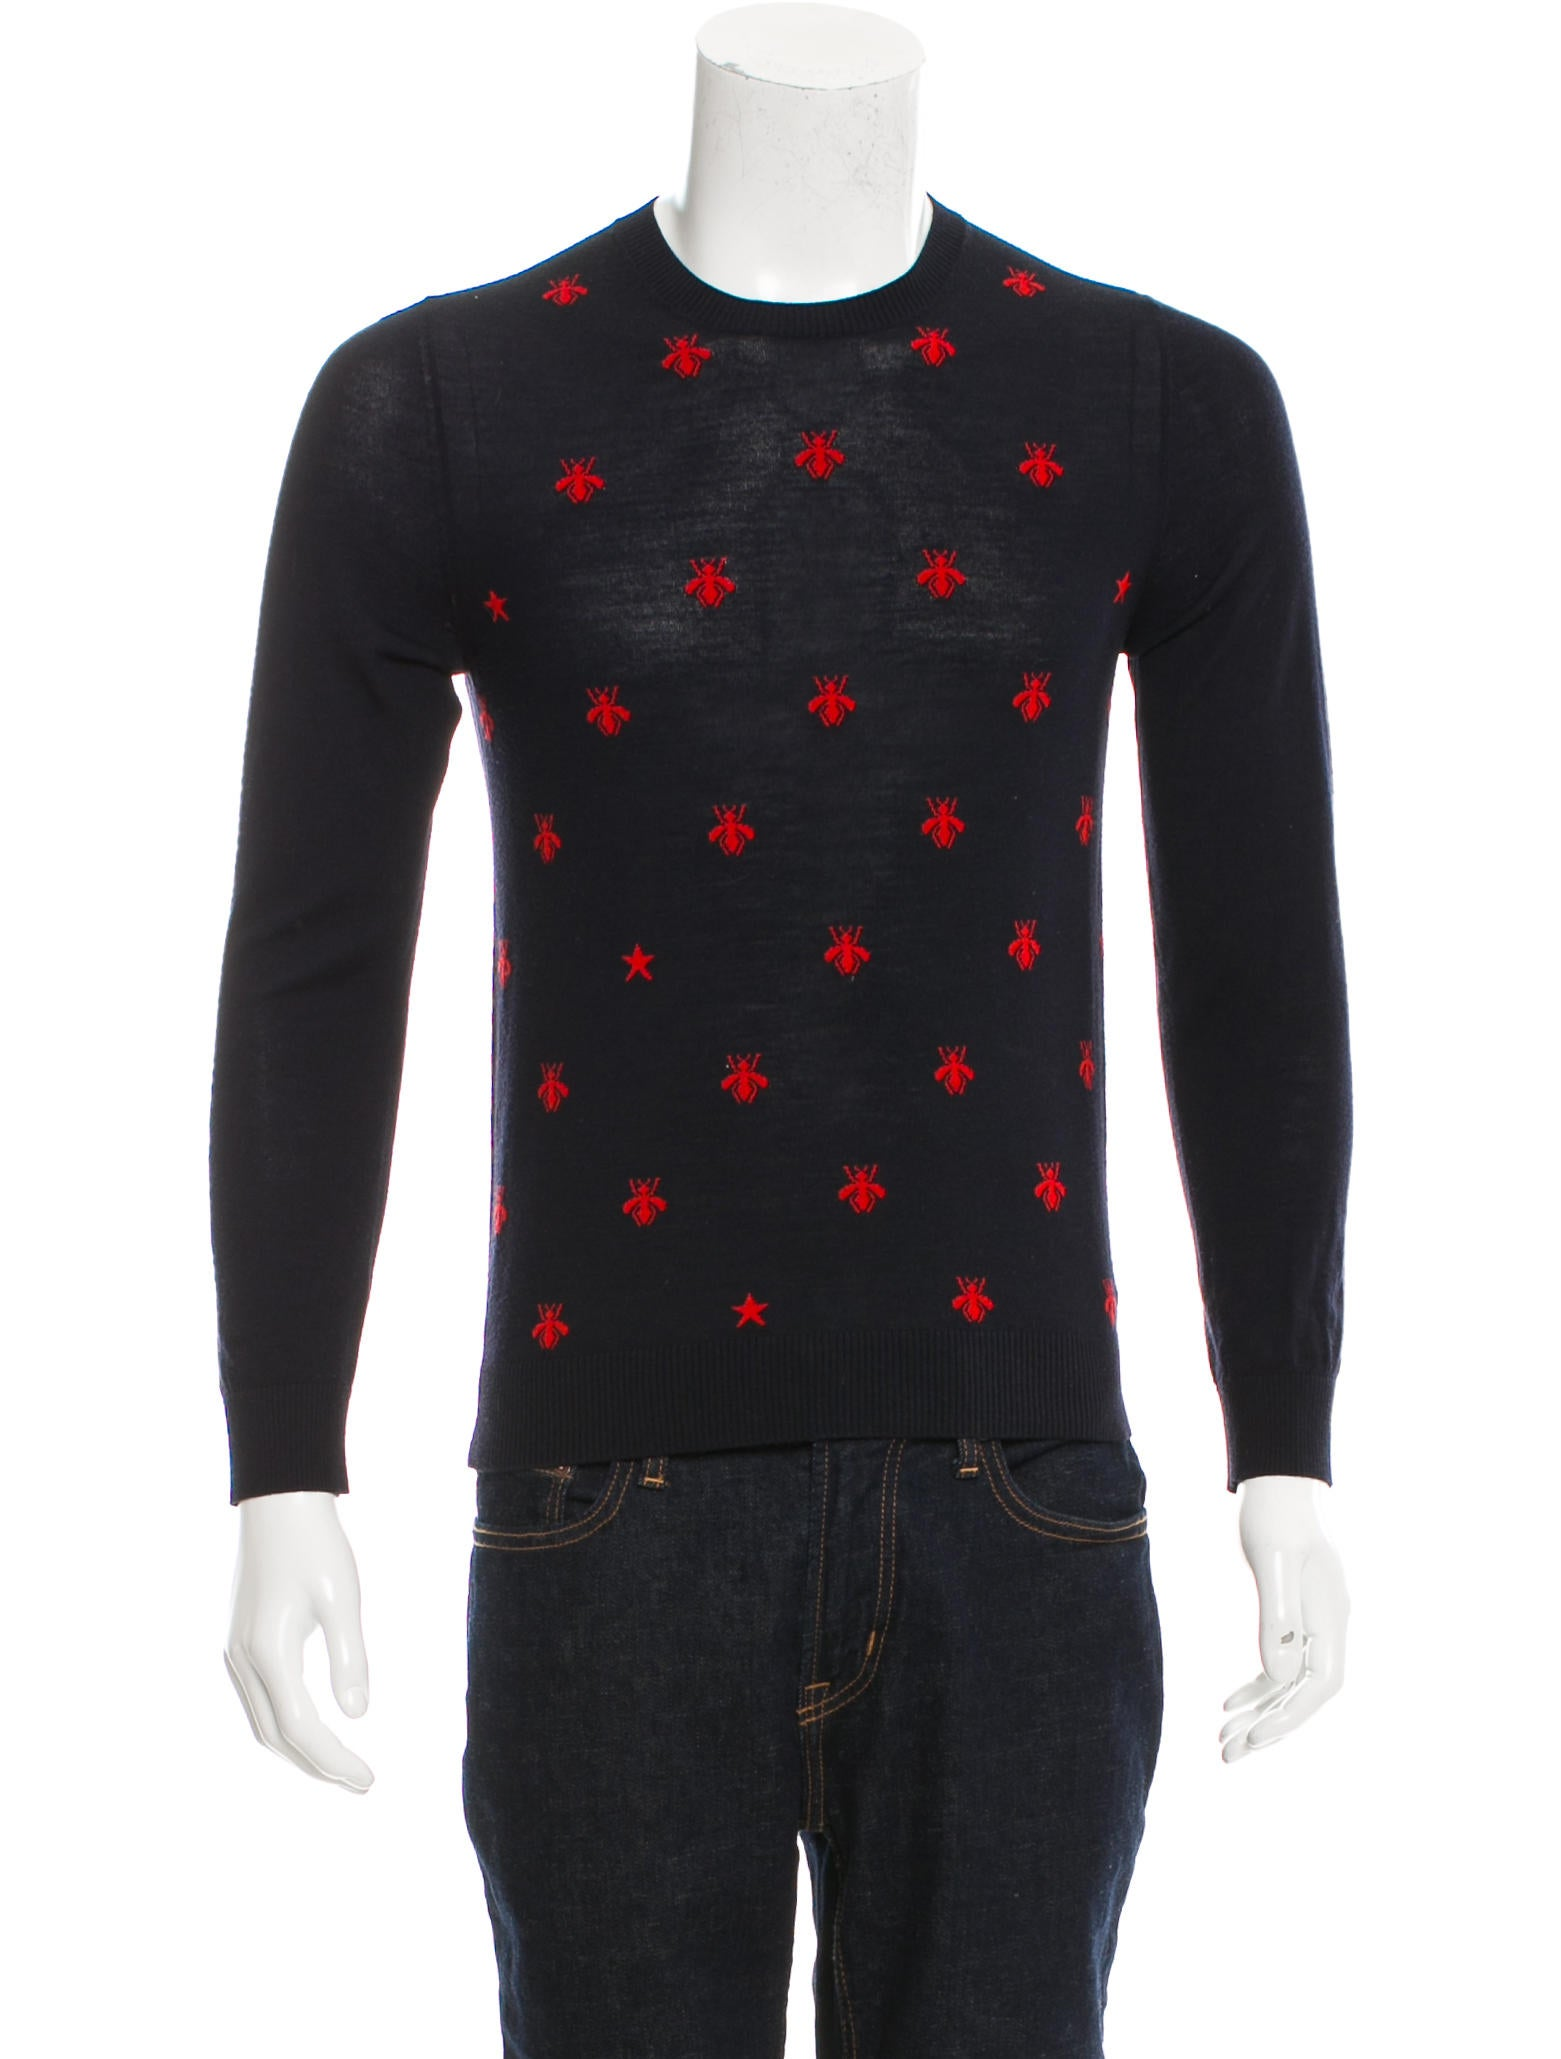 gucci 2018 patterned wool crewneck sweater clothing guc188853